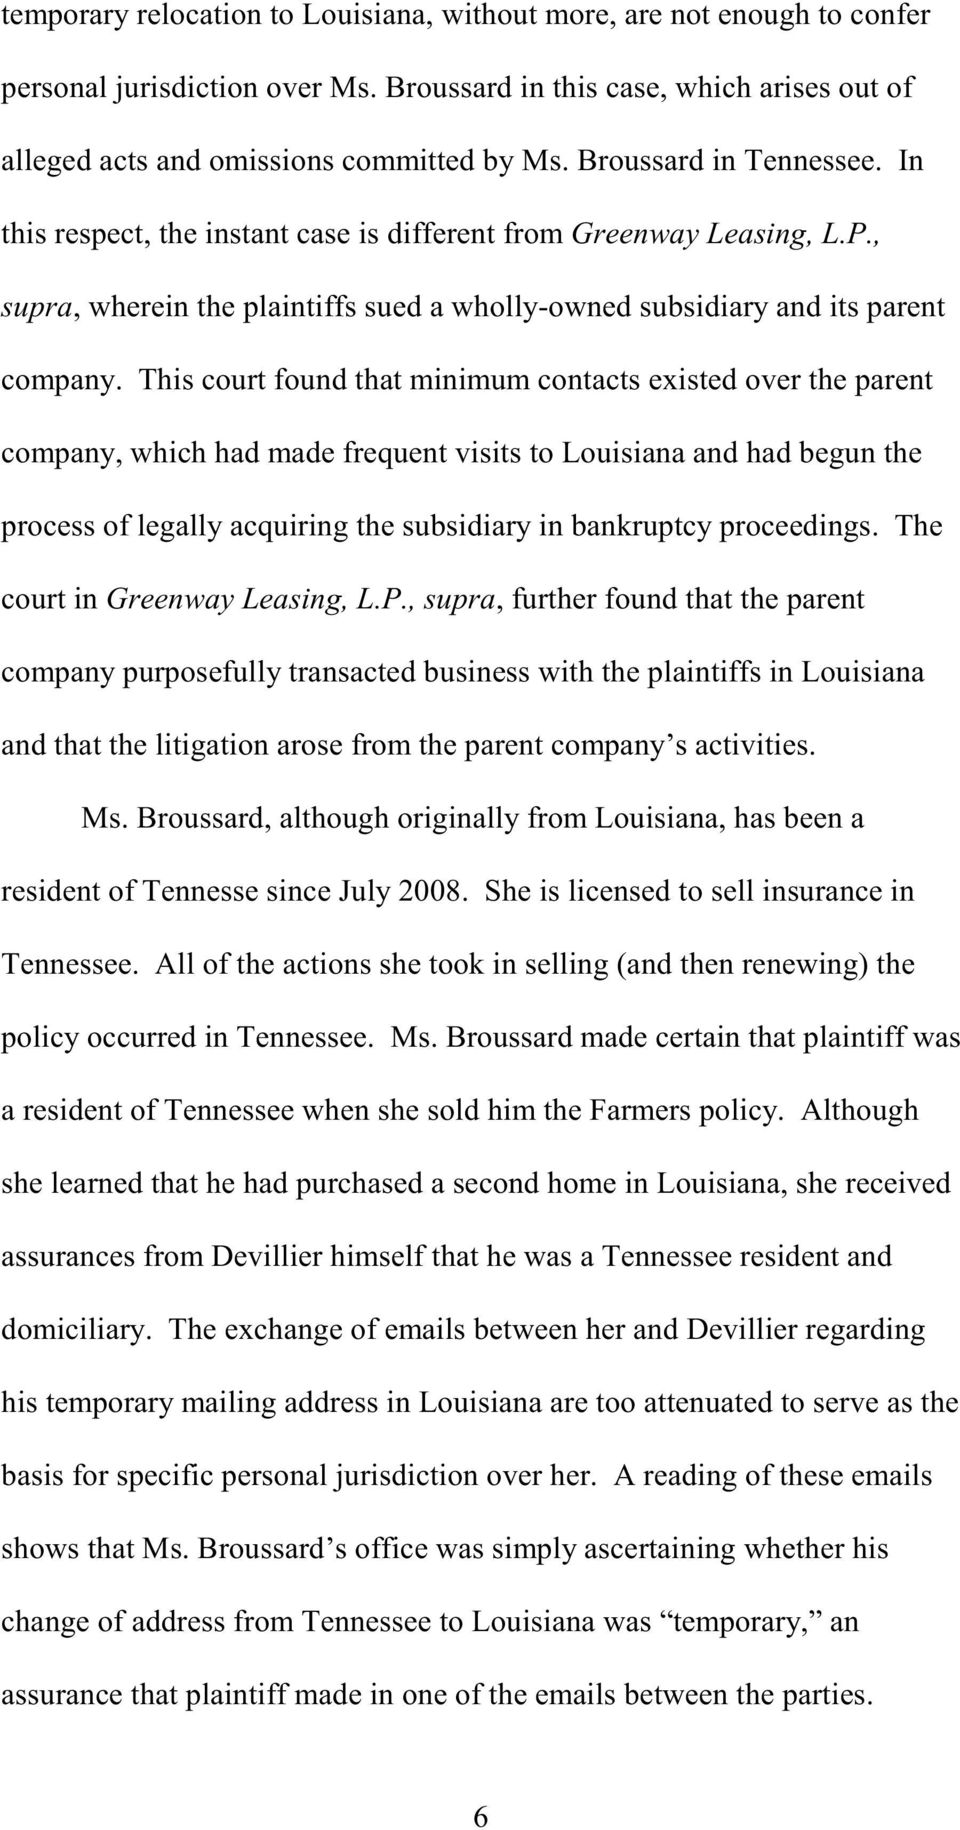 This court found that minimum contacts existed over the parent company, which had made frequent visits to Louisiana and had begun the process of legally acquiring the subsidiary in bankruptcy